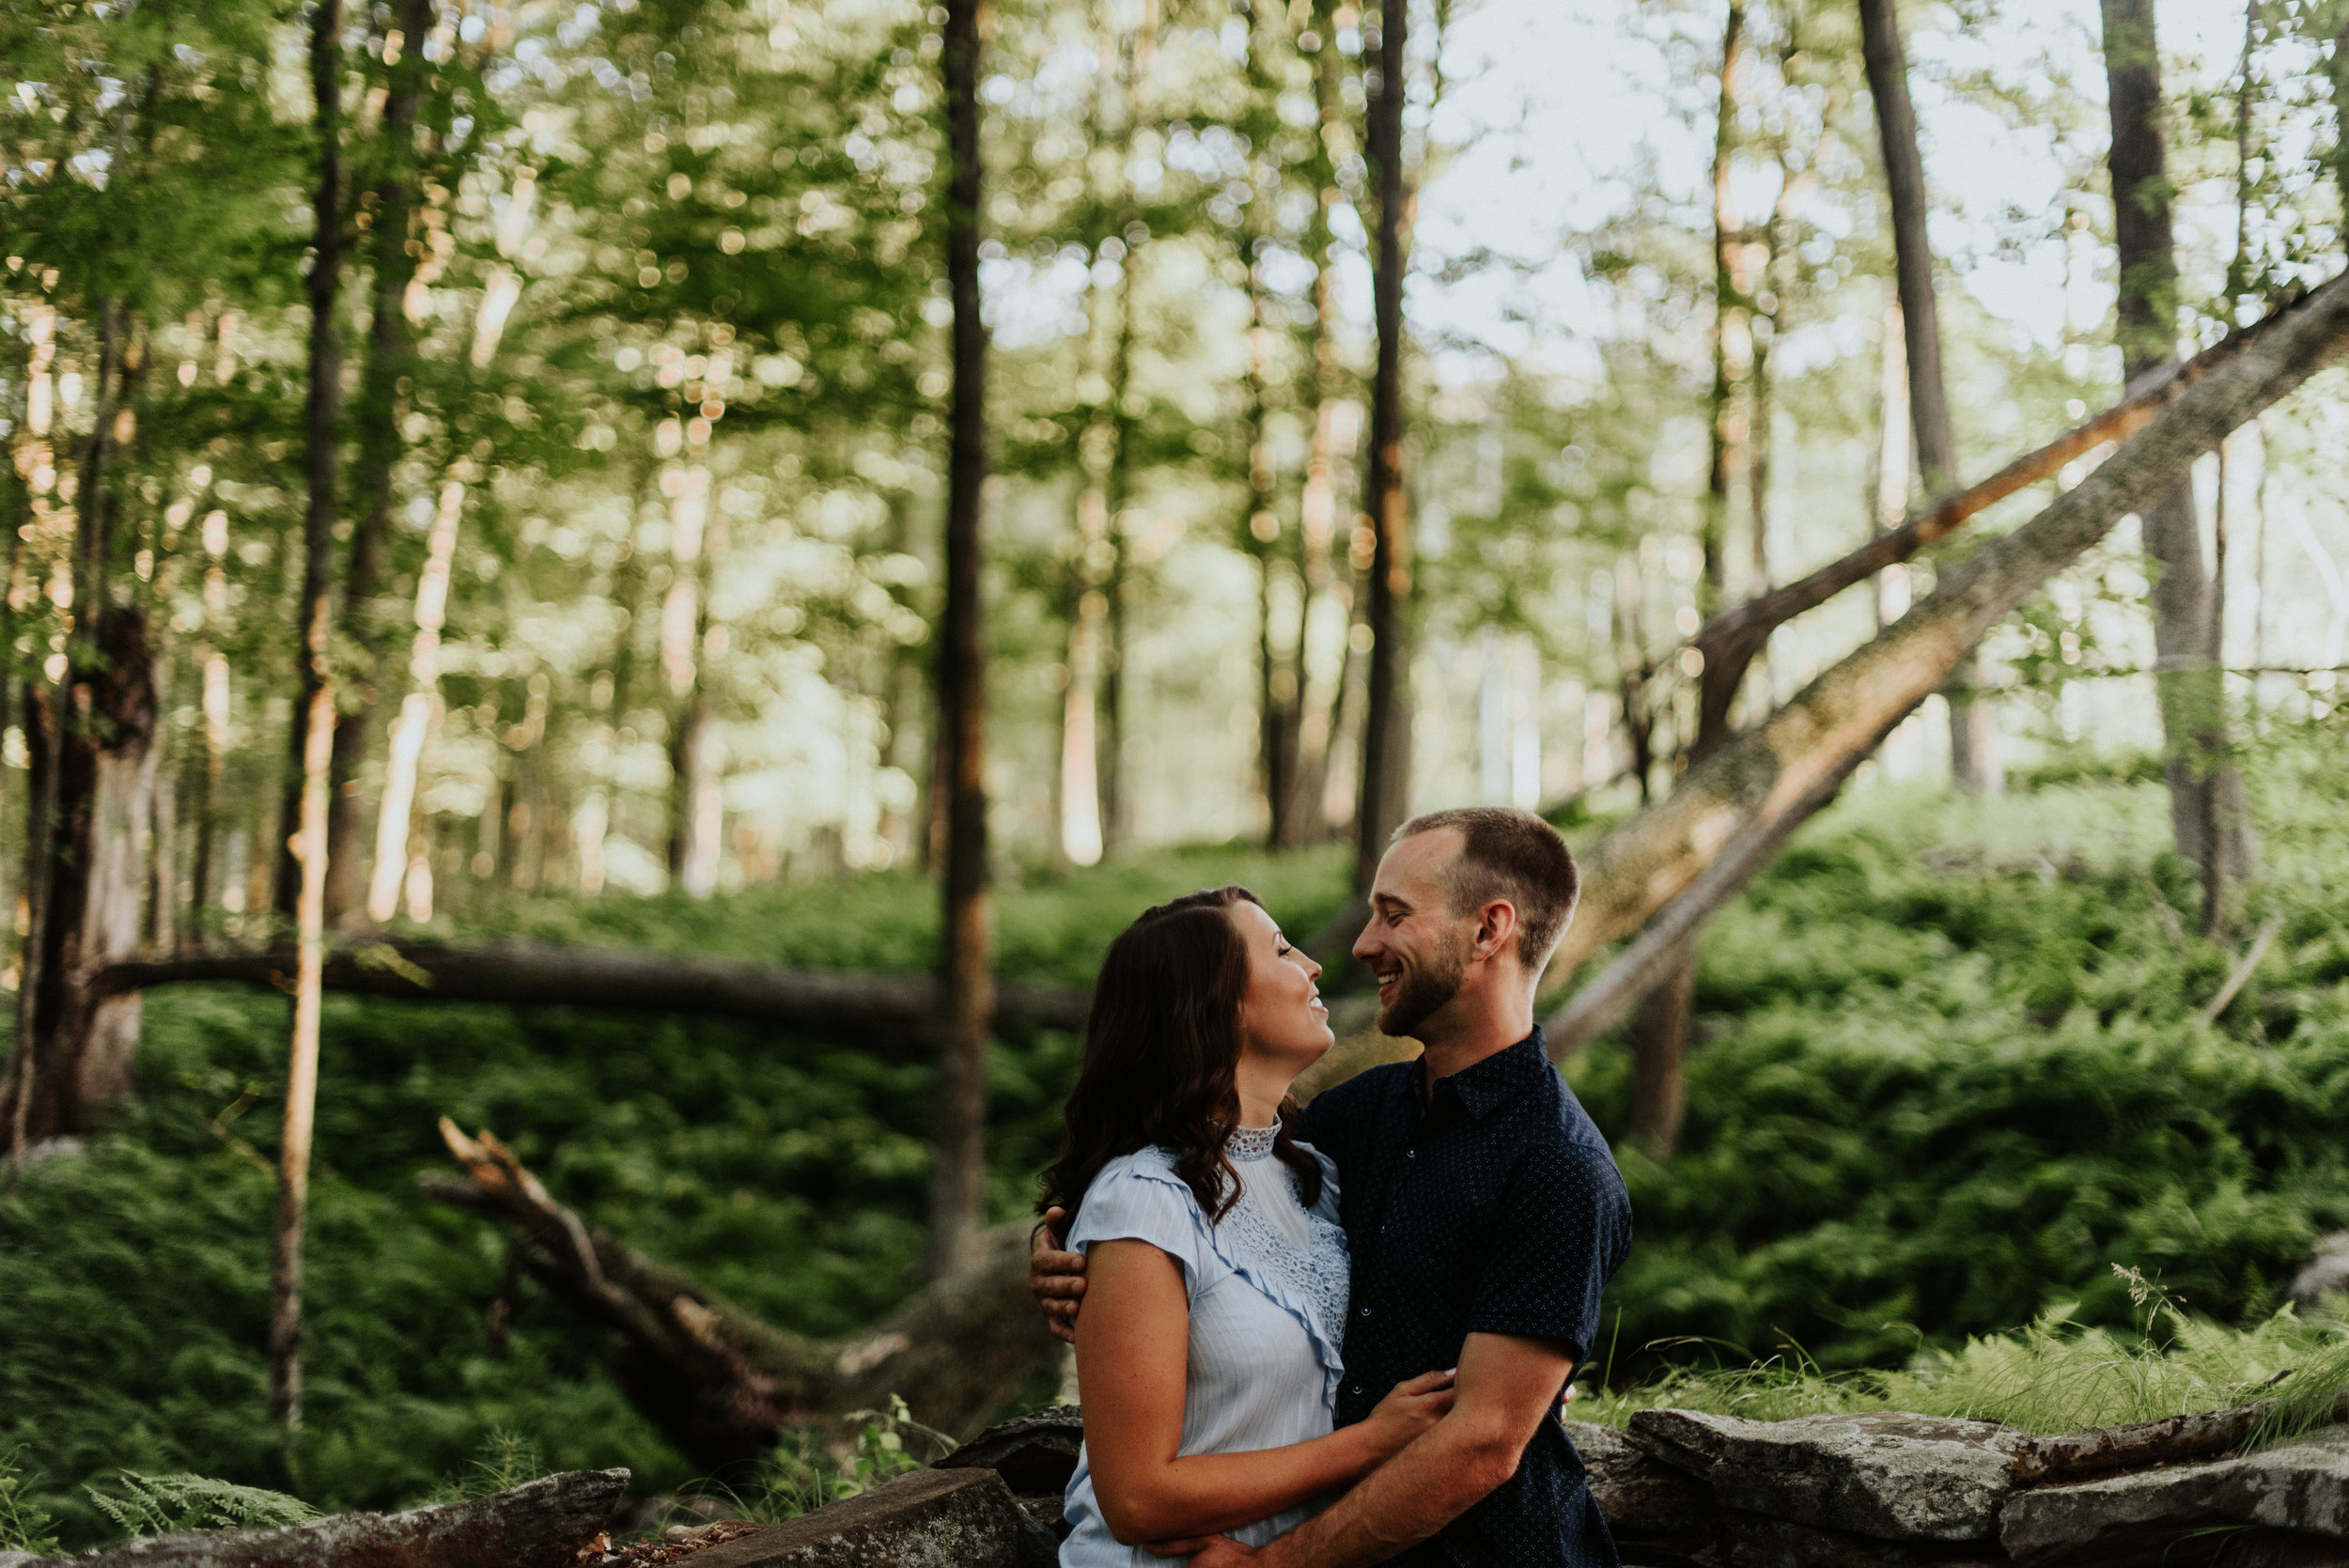 Amanda & Sean-Massachusetts-Forest Waterfront Engagement Session-Woodsy Outdoor Couples Session-Photographer-79.jpg